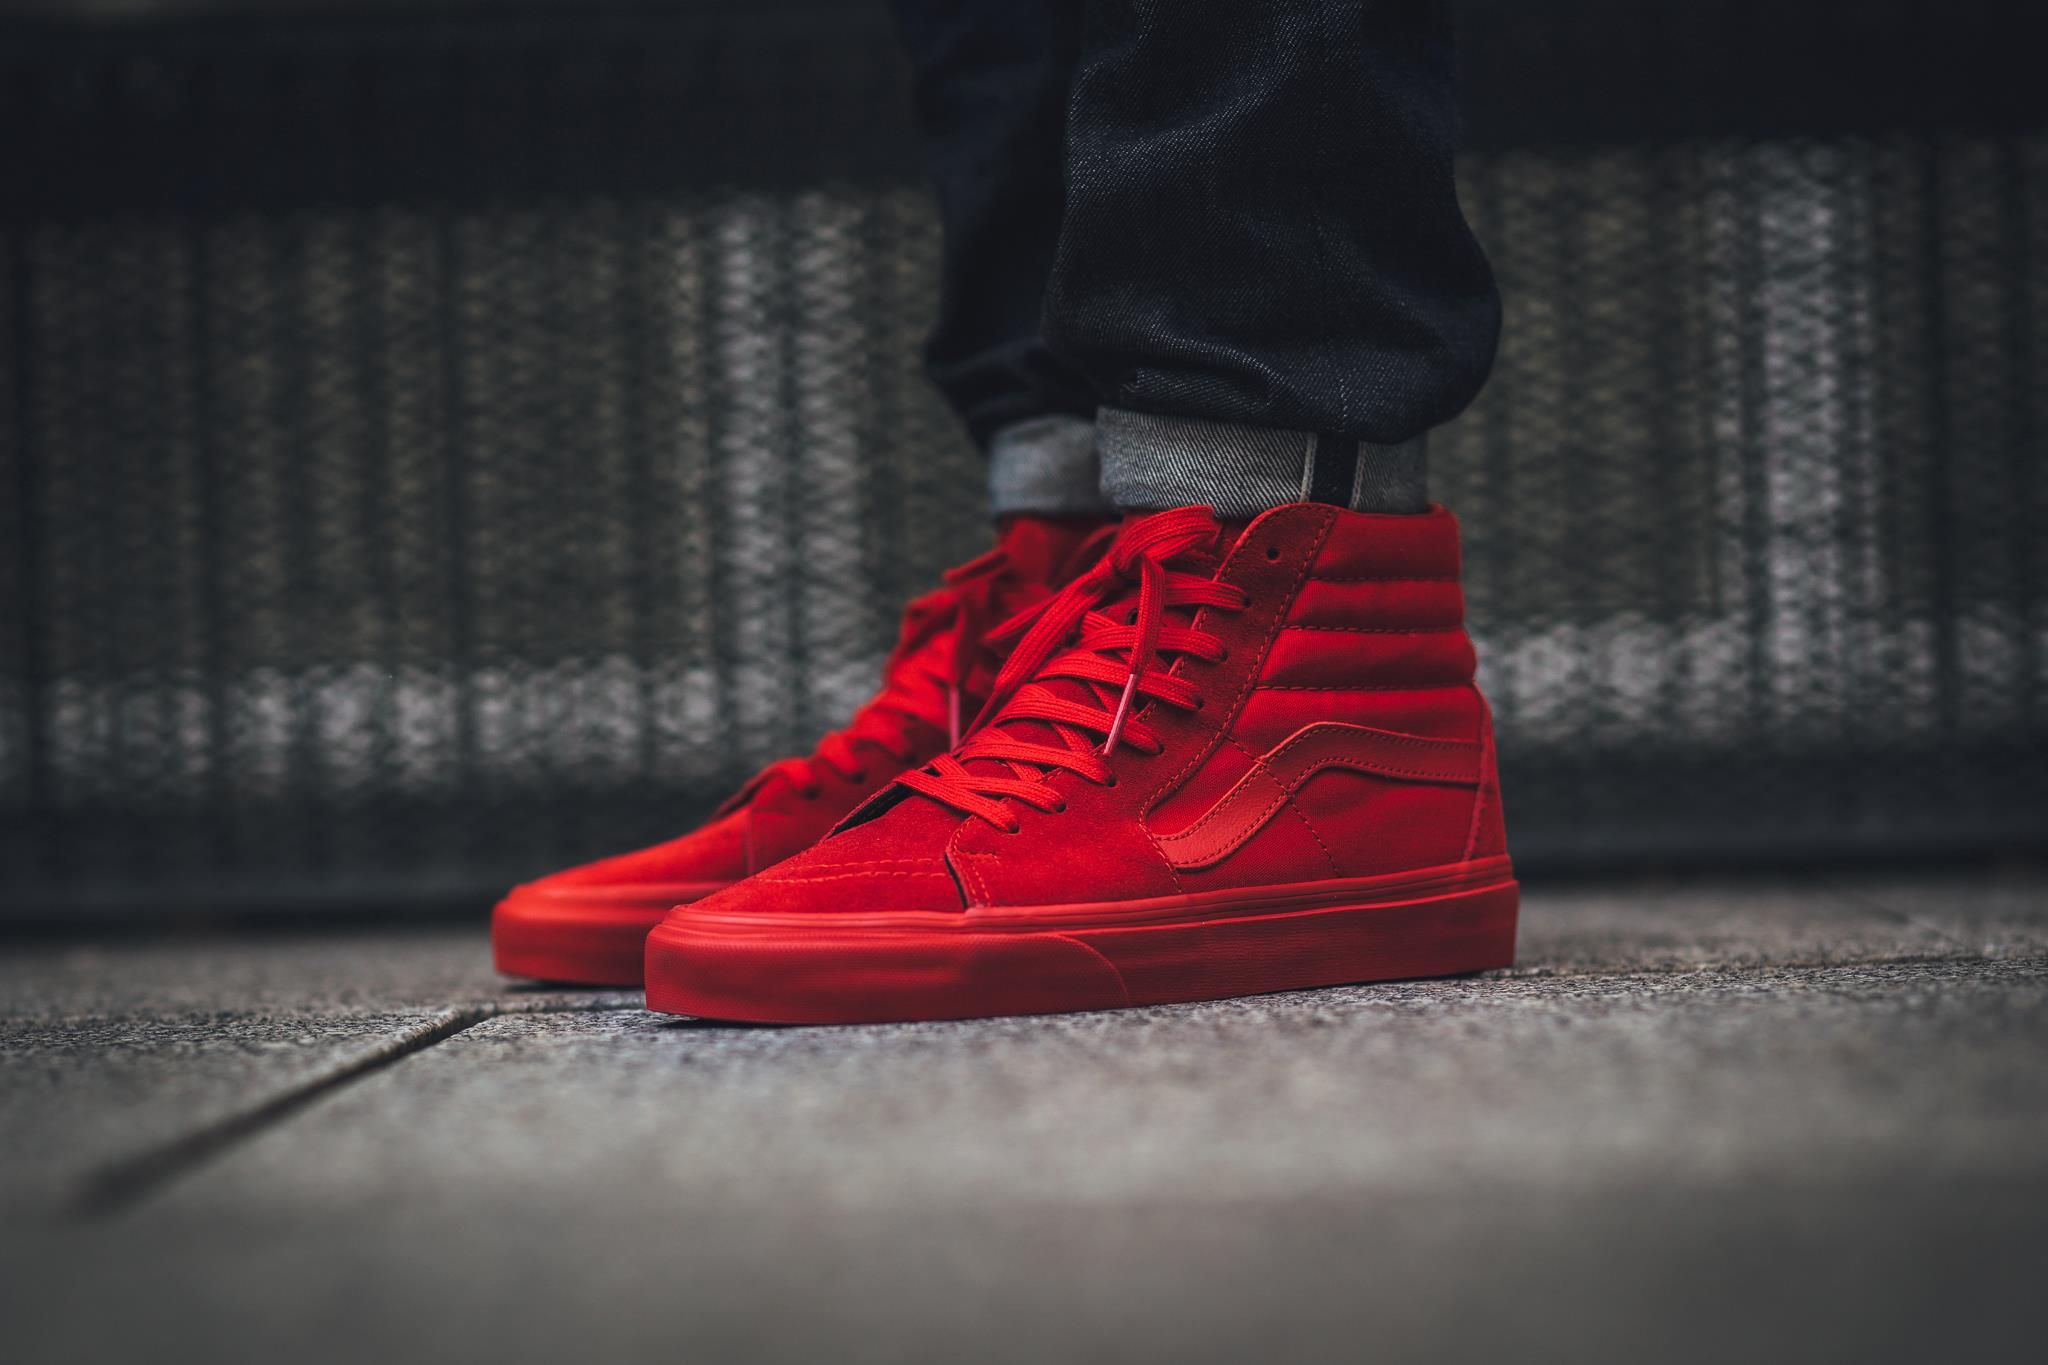 "a65b6d31be21 ... ubiquitous All-Red colorway this season. Find a pair at Vans retailers  overseas now. ""Straight Red Hi s😍"". Bright Red Covers The Vans SK8-Hi ..."